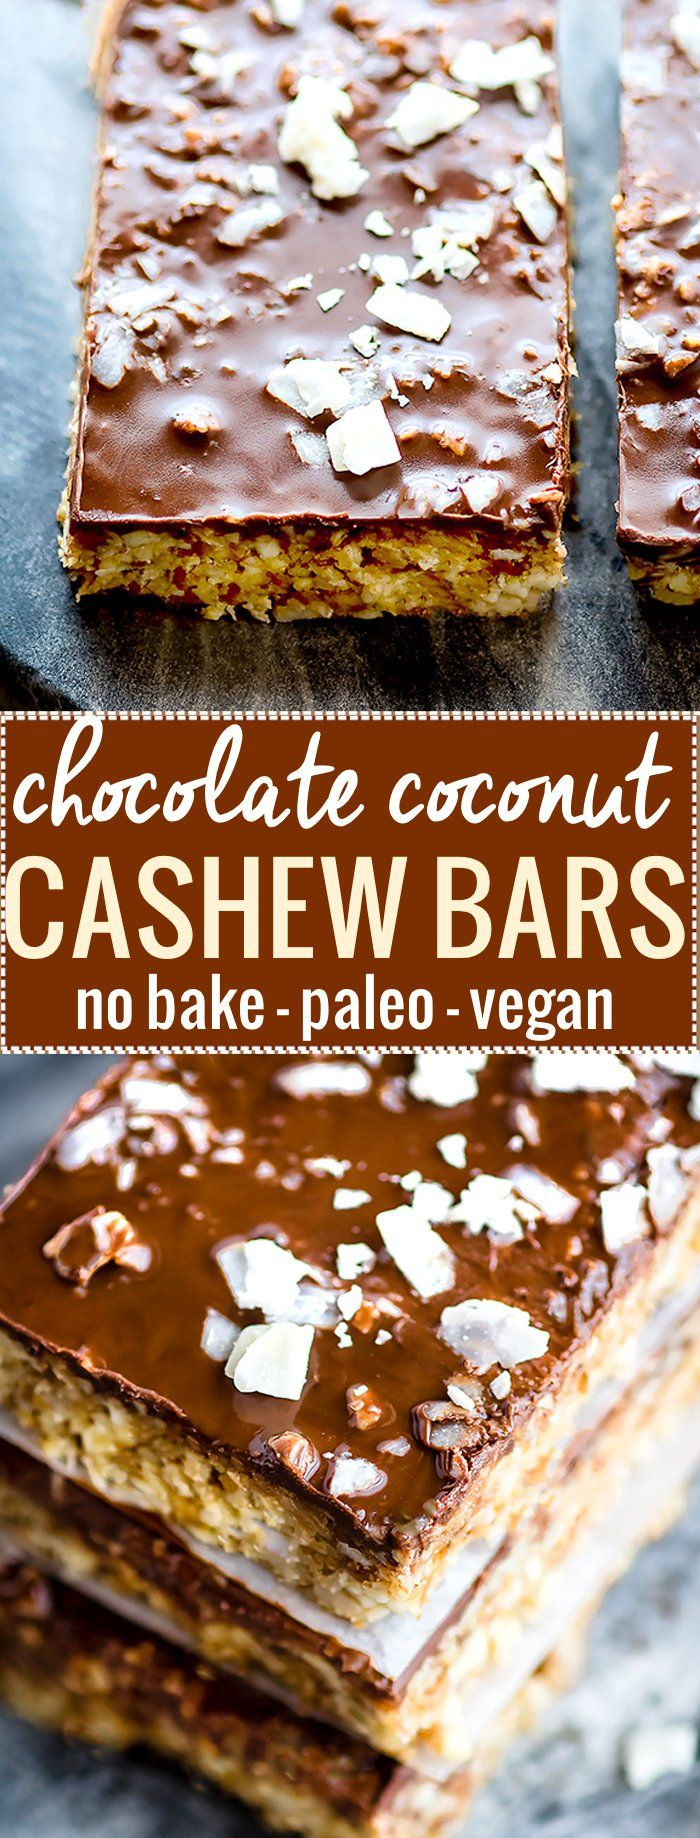 No bake Chocolate Coconut Cashew Bars made in 3 easysteps! These no bake chocolate bars are vegan, paleo, and gluten free. Perfect for snacking on the go or a healthy dessert. No oils, no flours, simple wholesome ingredients! @cottercrunch